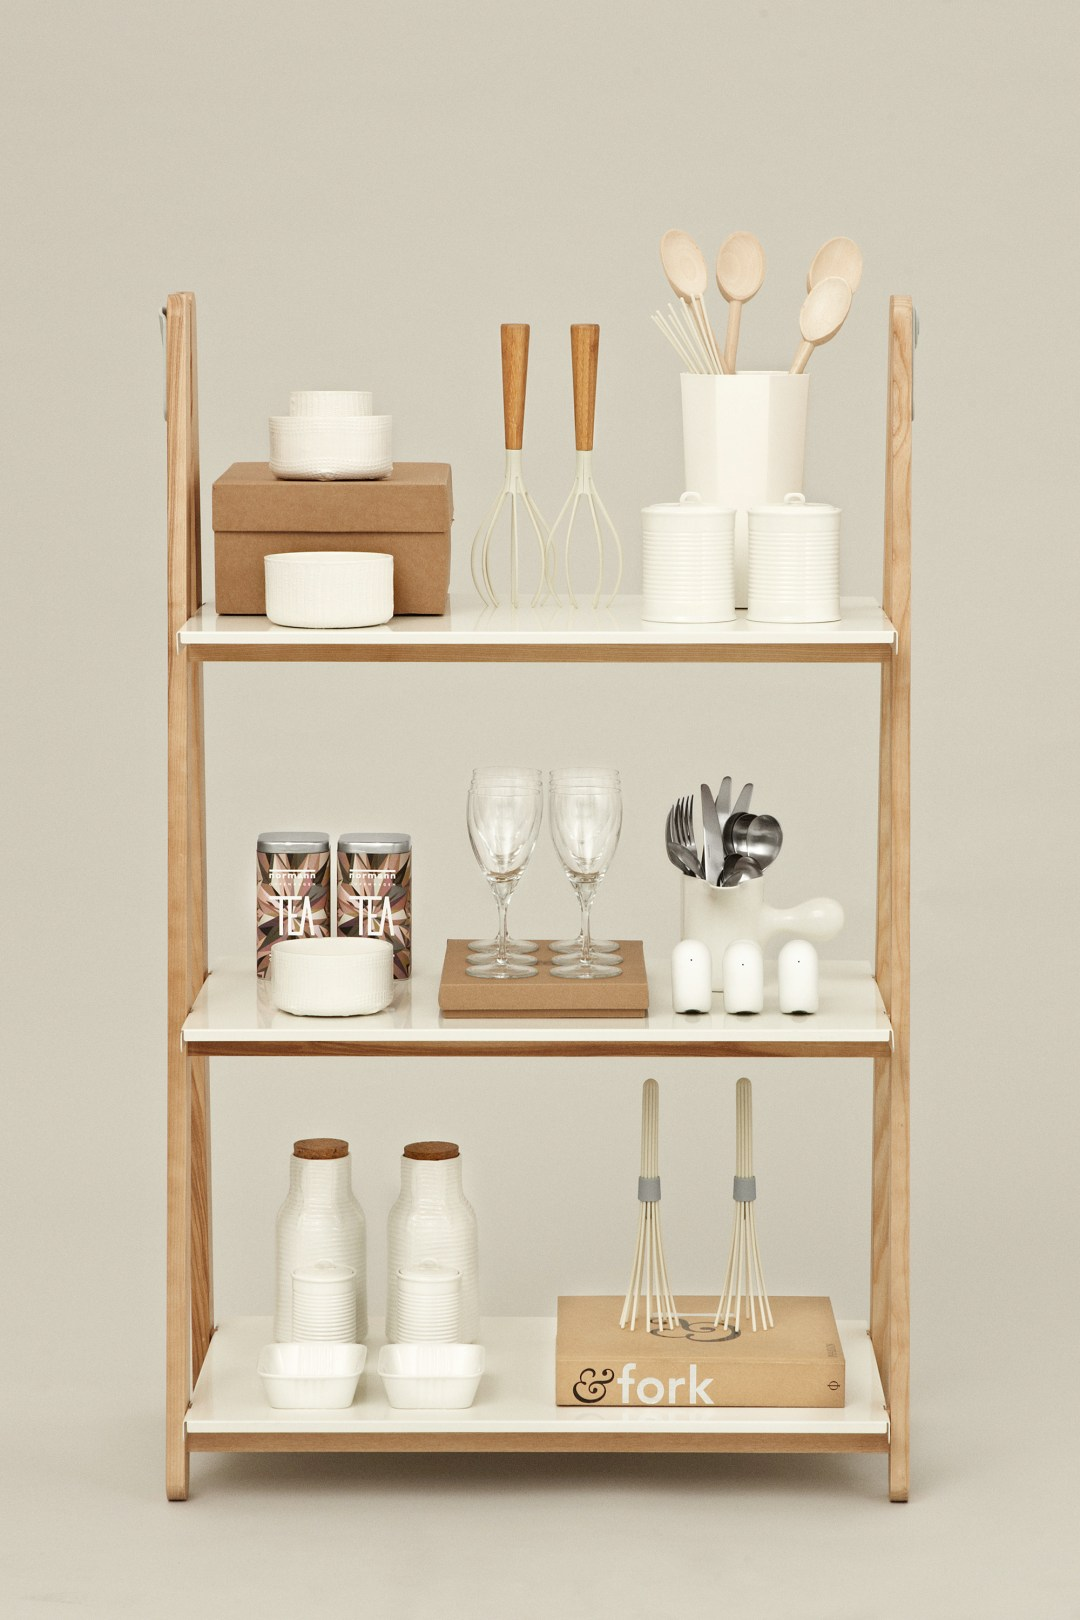 5 simple minimalist shelving solutions